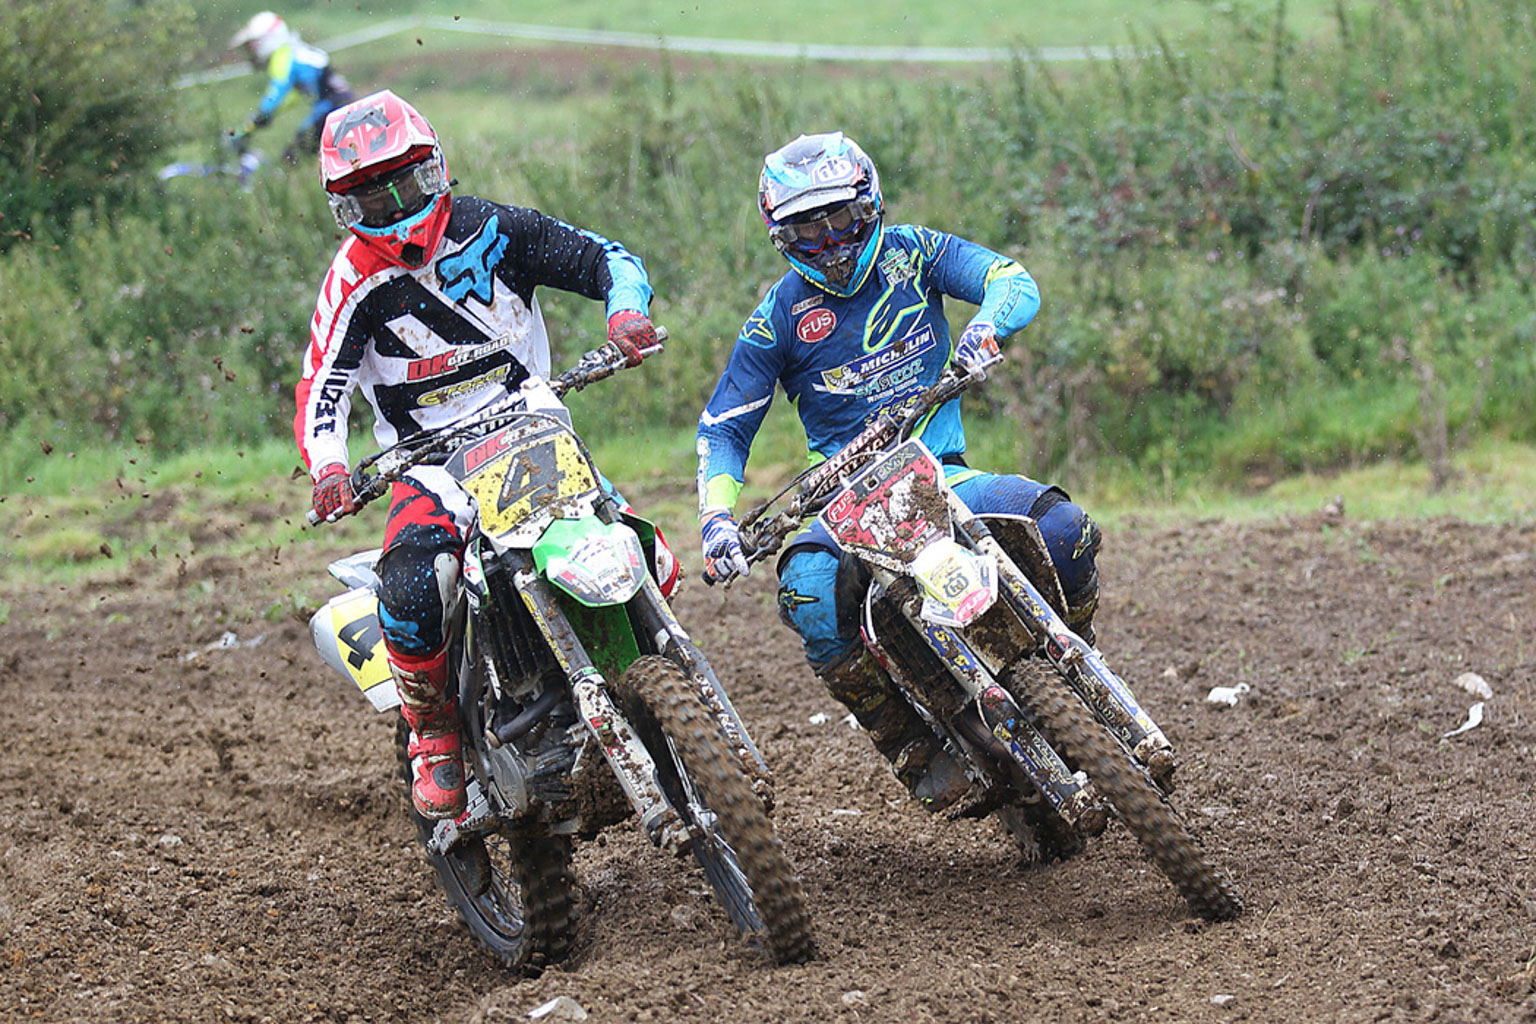 Close MX1 action from Gary Gibson(4) and Luke Burton